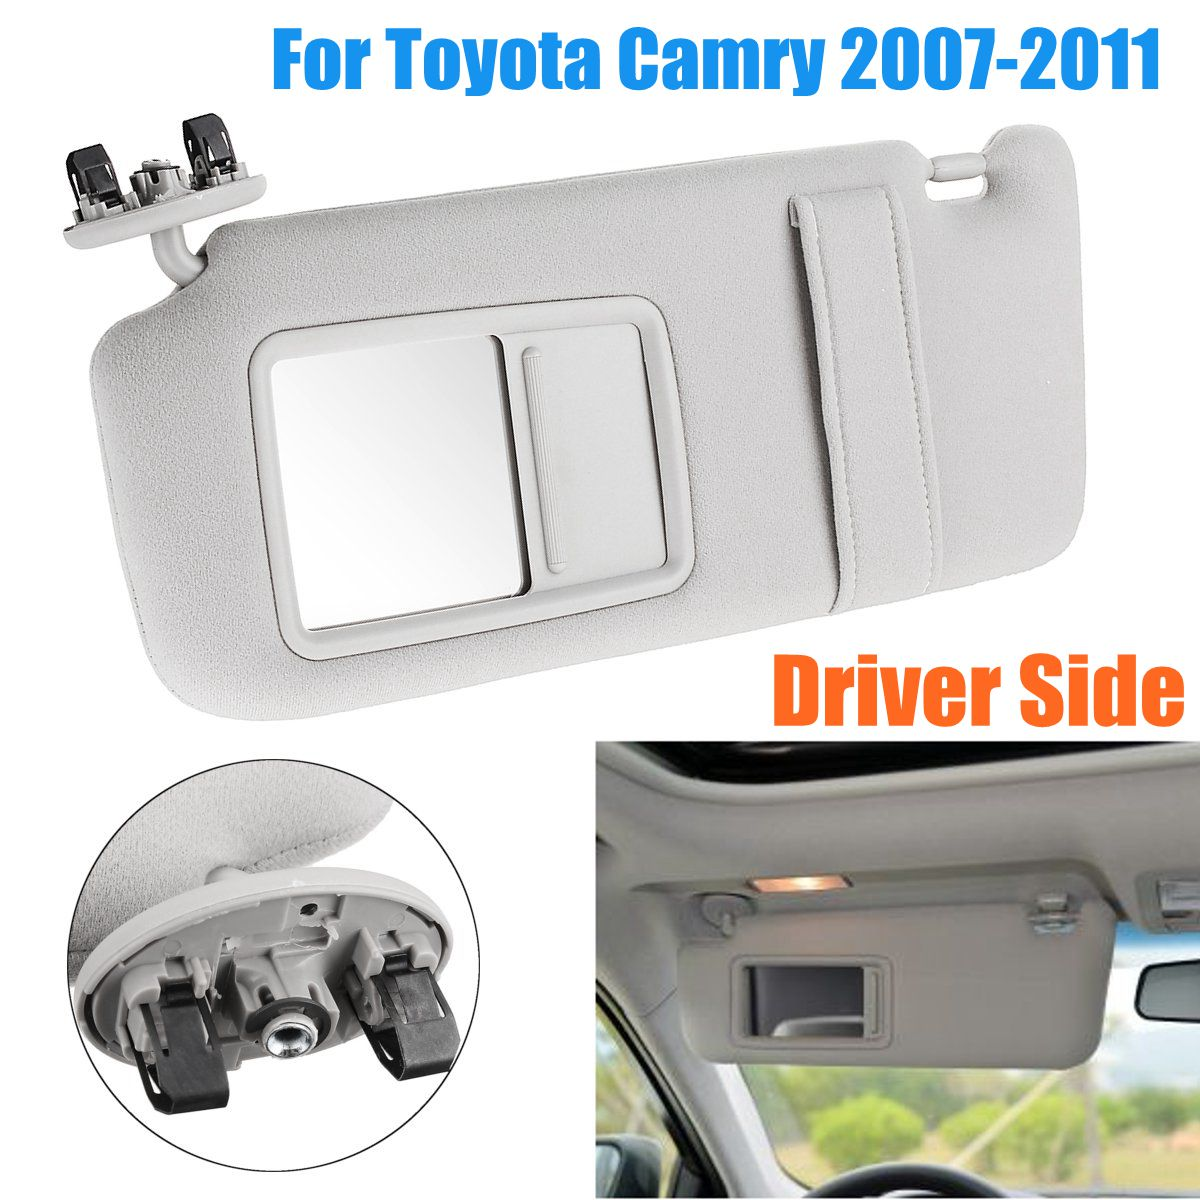 Front Left Driver Side Sun Visor Without Sunroof for Toyota Camry 2007 2008 2009 2010 2011Front Left Driver Side Sun Visor Without Sunroof for Toyota Camry 2007 2008 2009 2010 2011